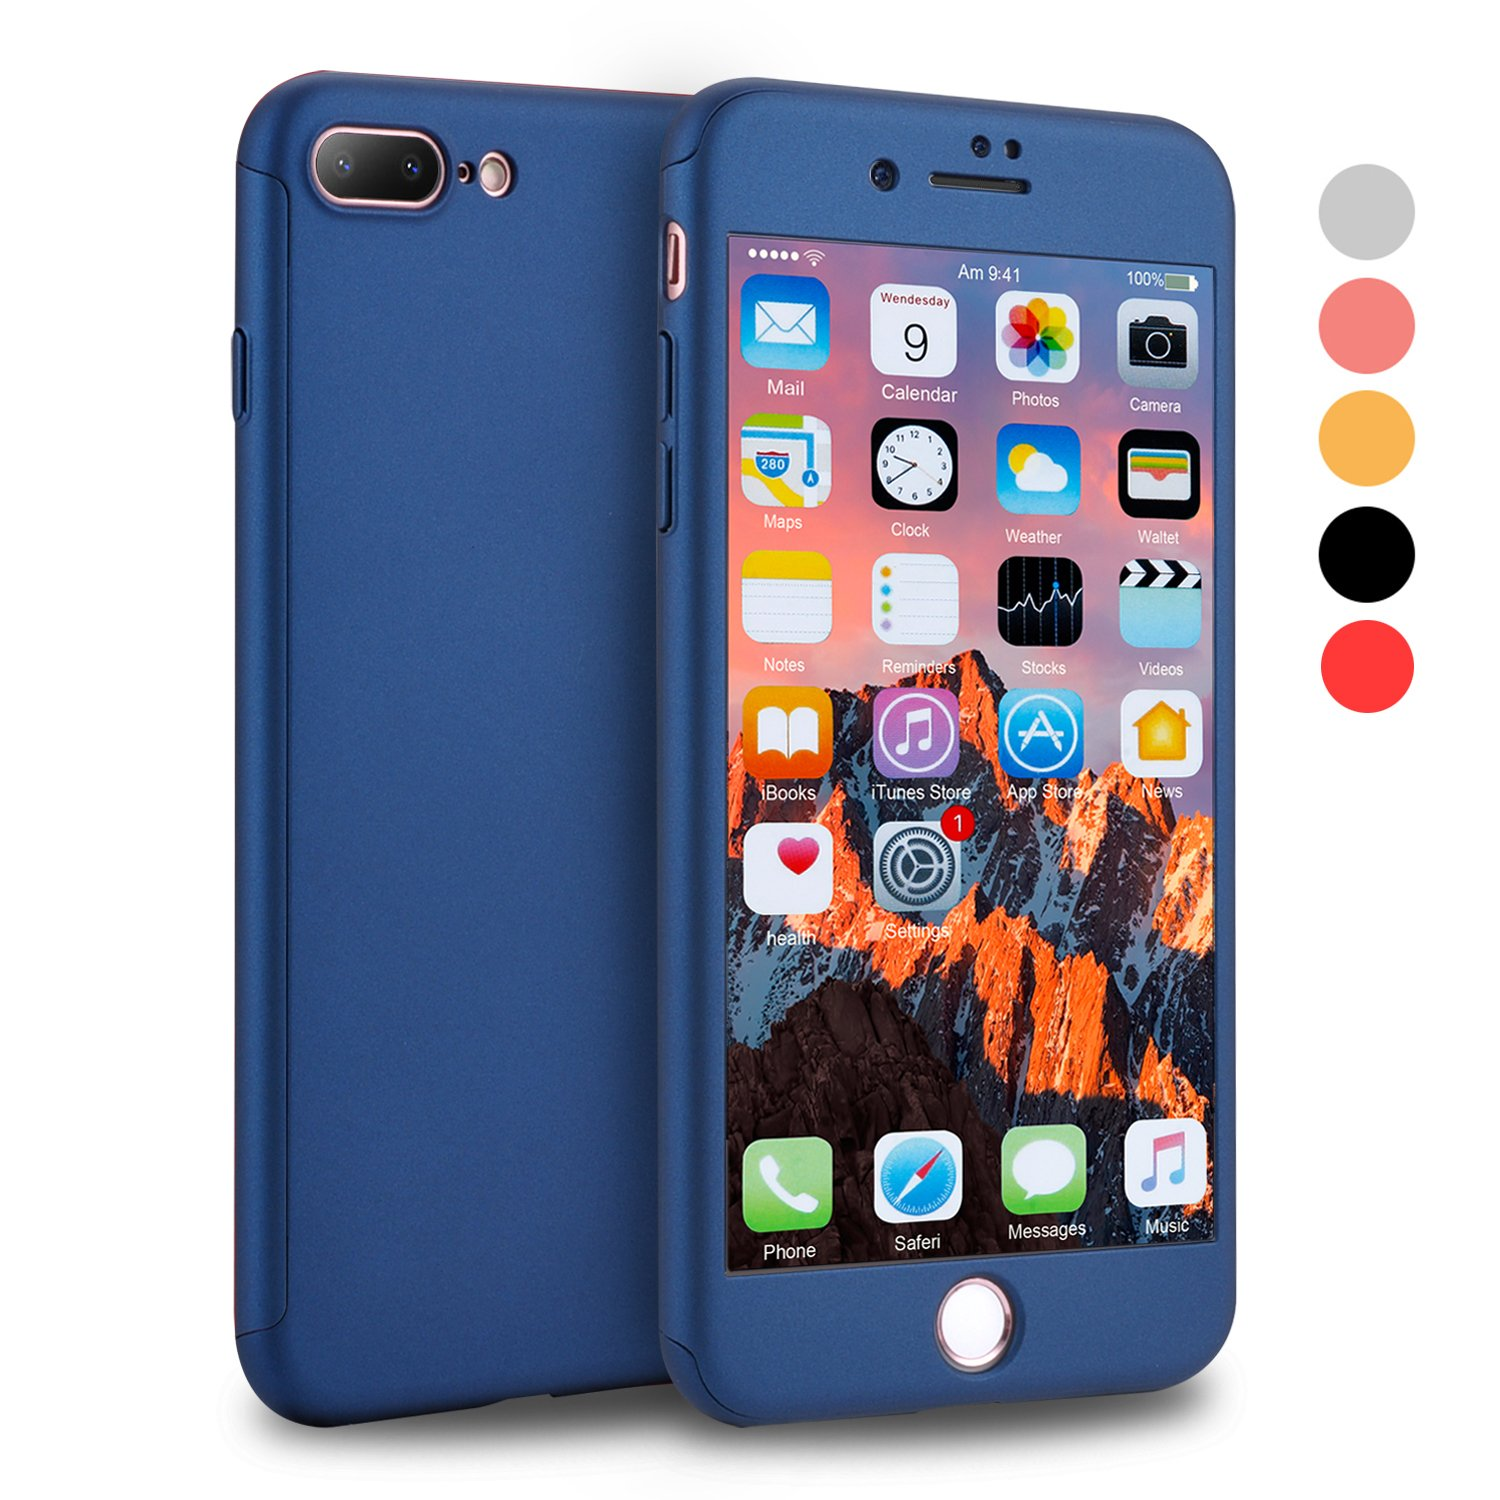 iPhone 7 Plus Case, VANSIN 360 Full Body Protection Hard Slim Case Coated Non Slip Matte Surface with Tempered Glass Screen Protector for Apple iPhone 7 Plus (5.5-inch) - Navy Blue